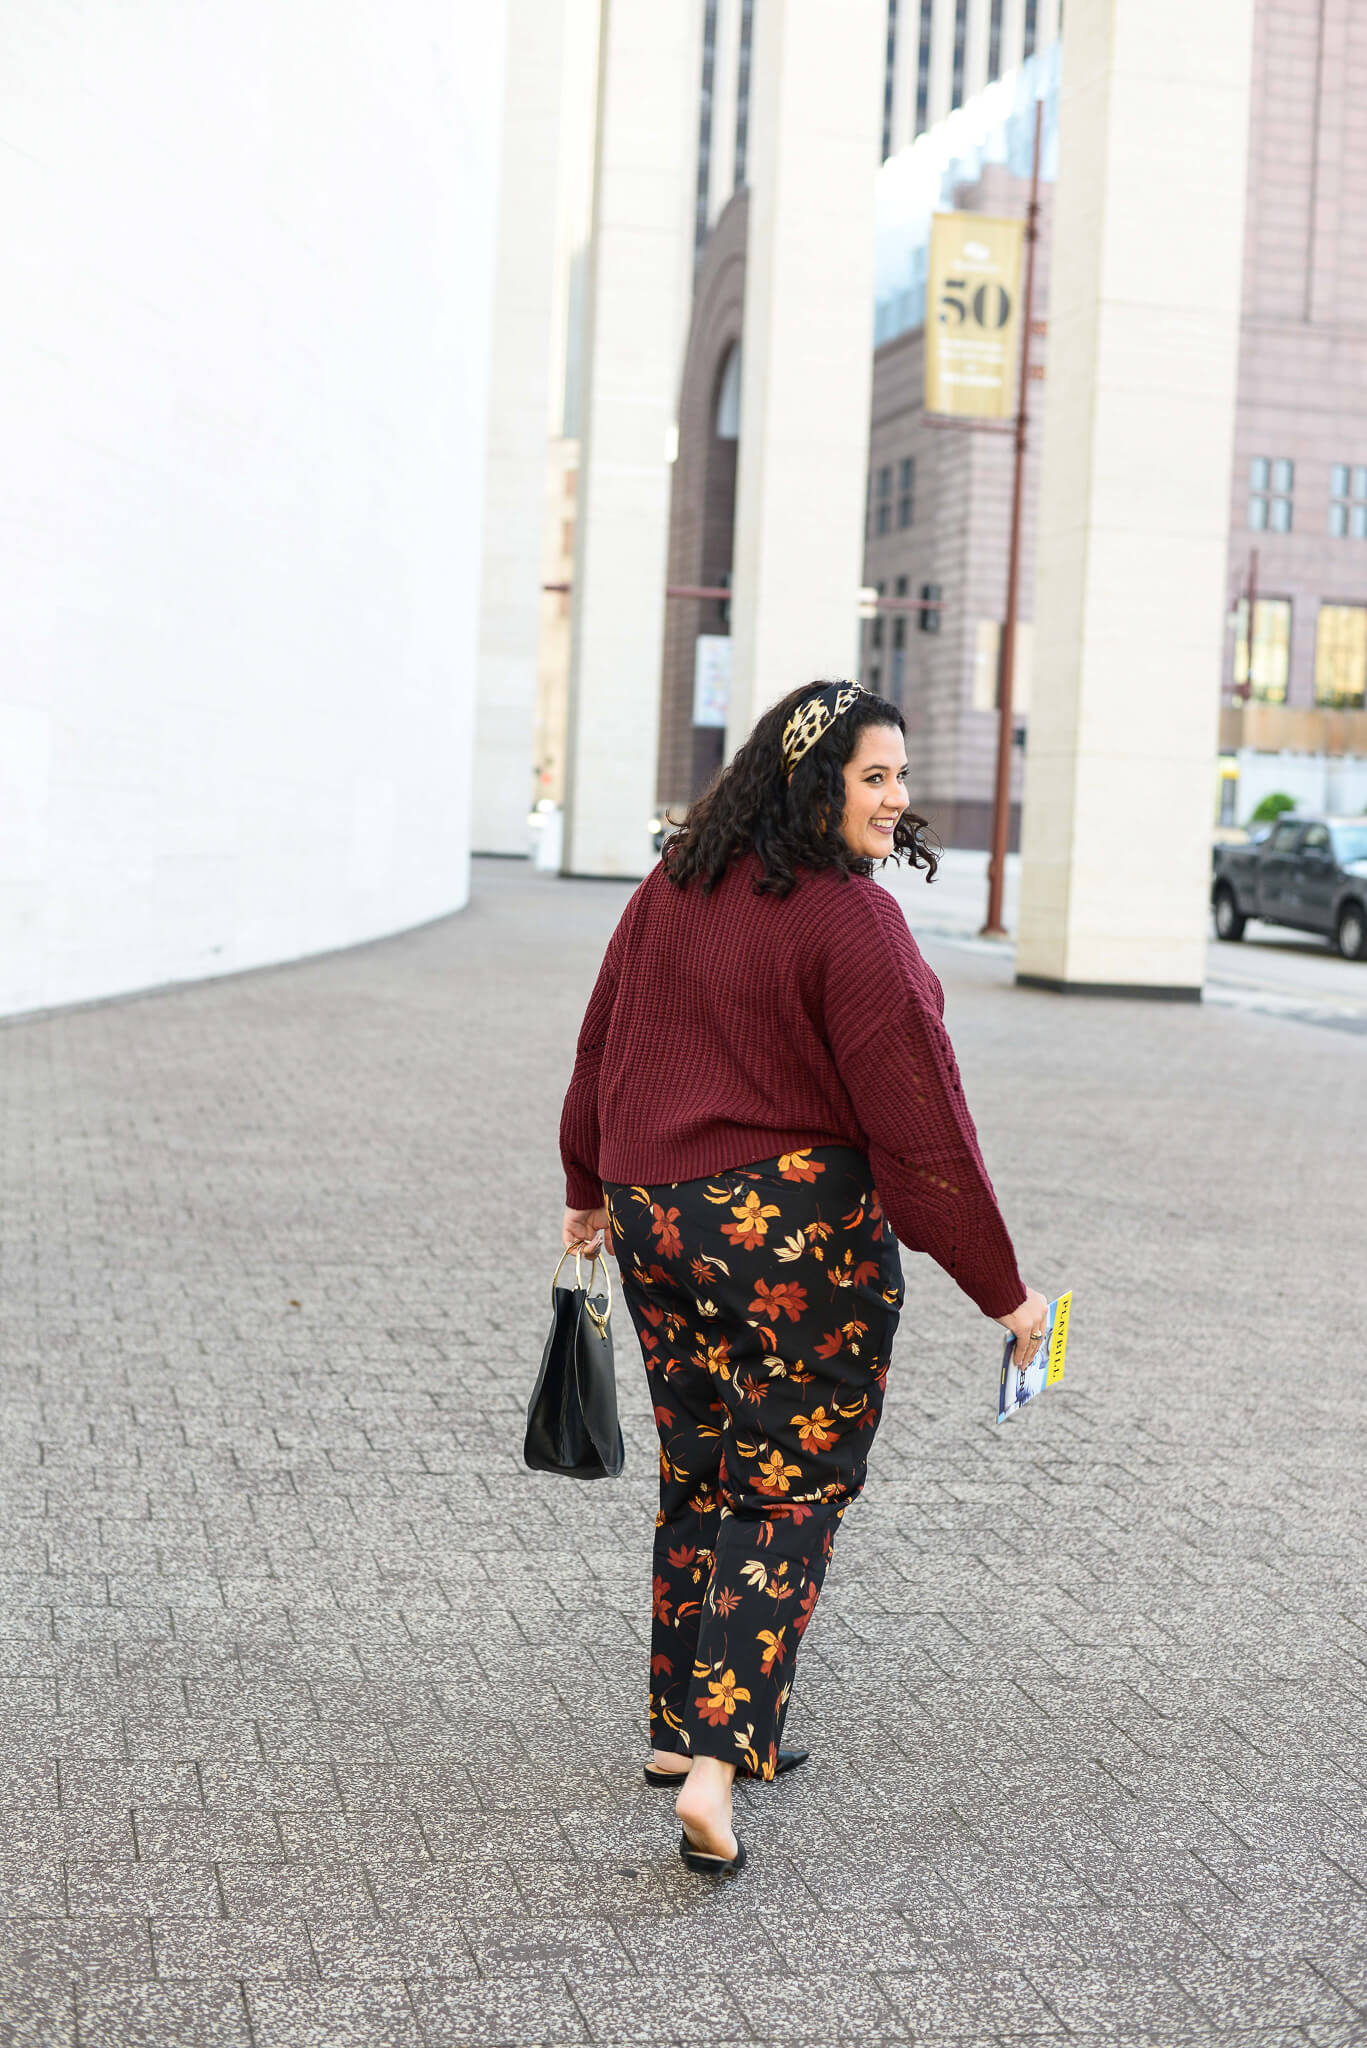 I love being able to be creative when dressing for a musical or play when going to the theater. These printed floral pants is perfect for any plus size ladies wardrobe.